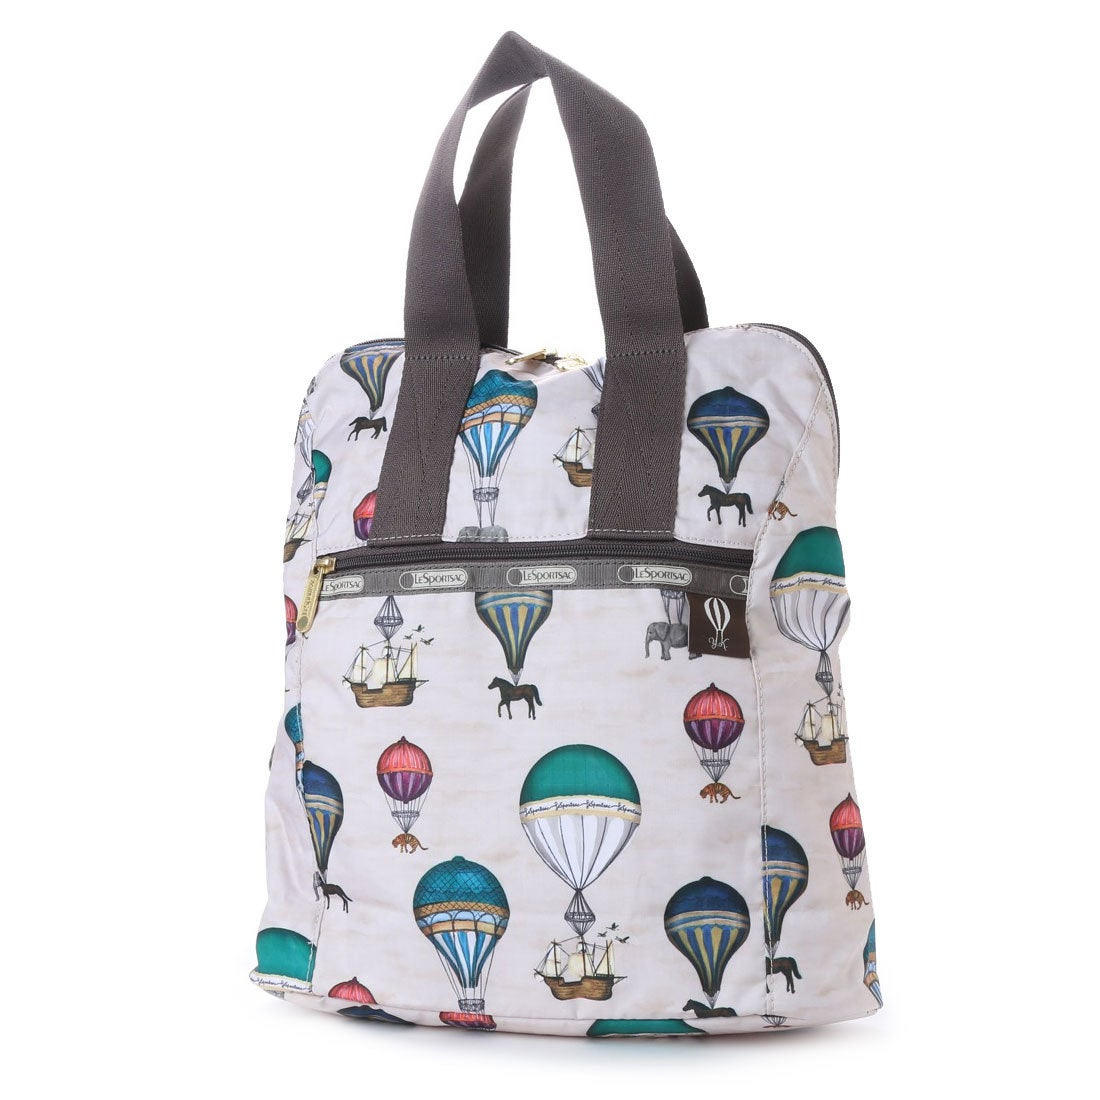 【SALE 30%OFF】レスポートサック LeSportsac EVERYDAY BACKPACK (LOVE IS IN THE AIR) レディース